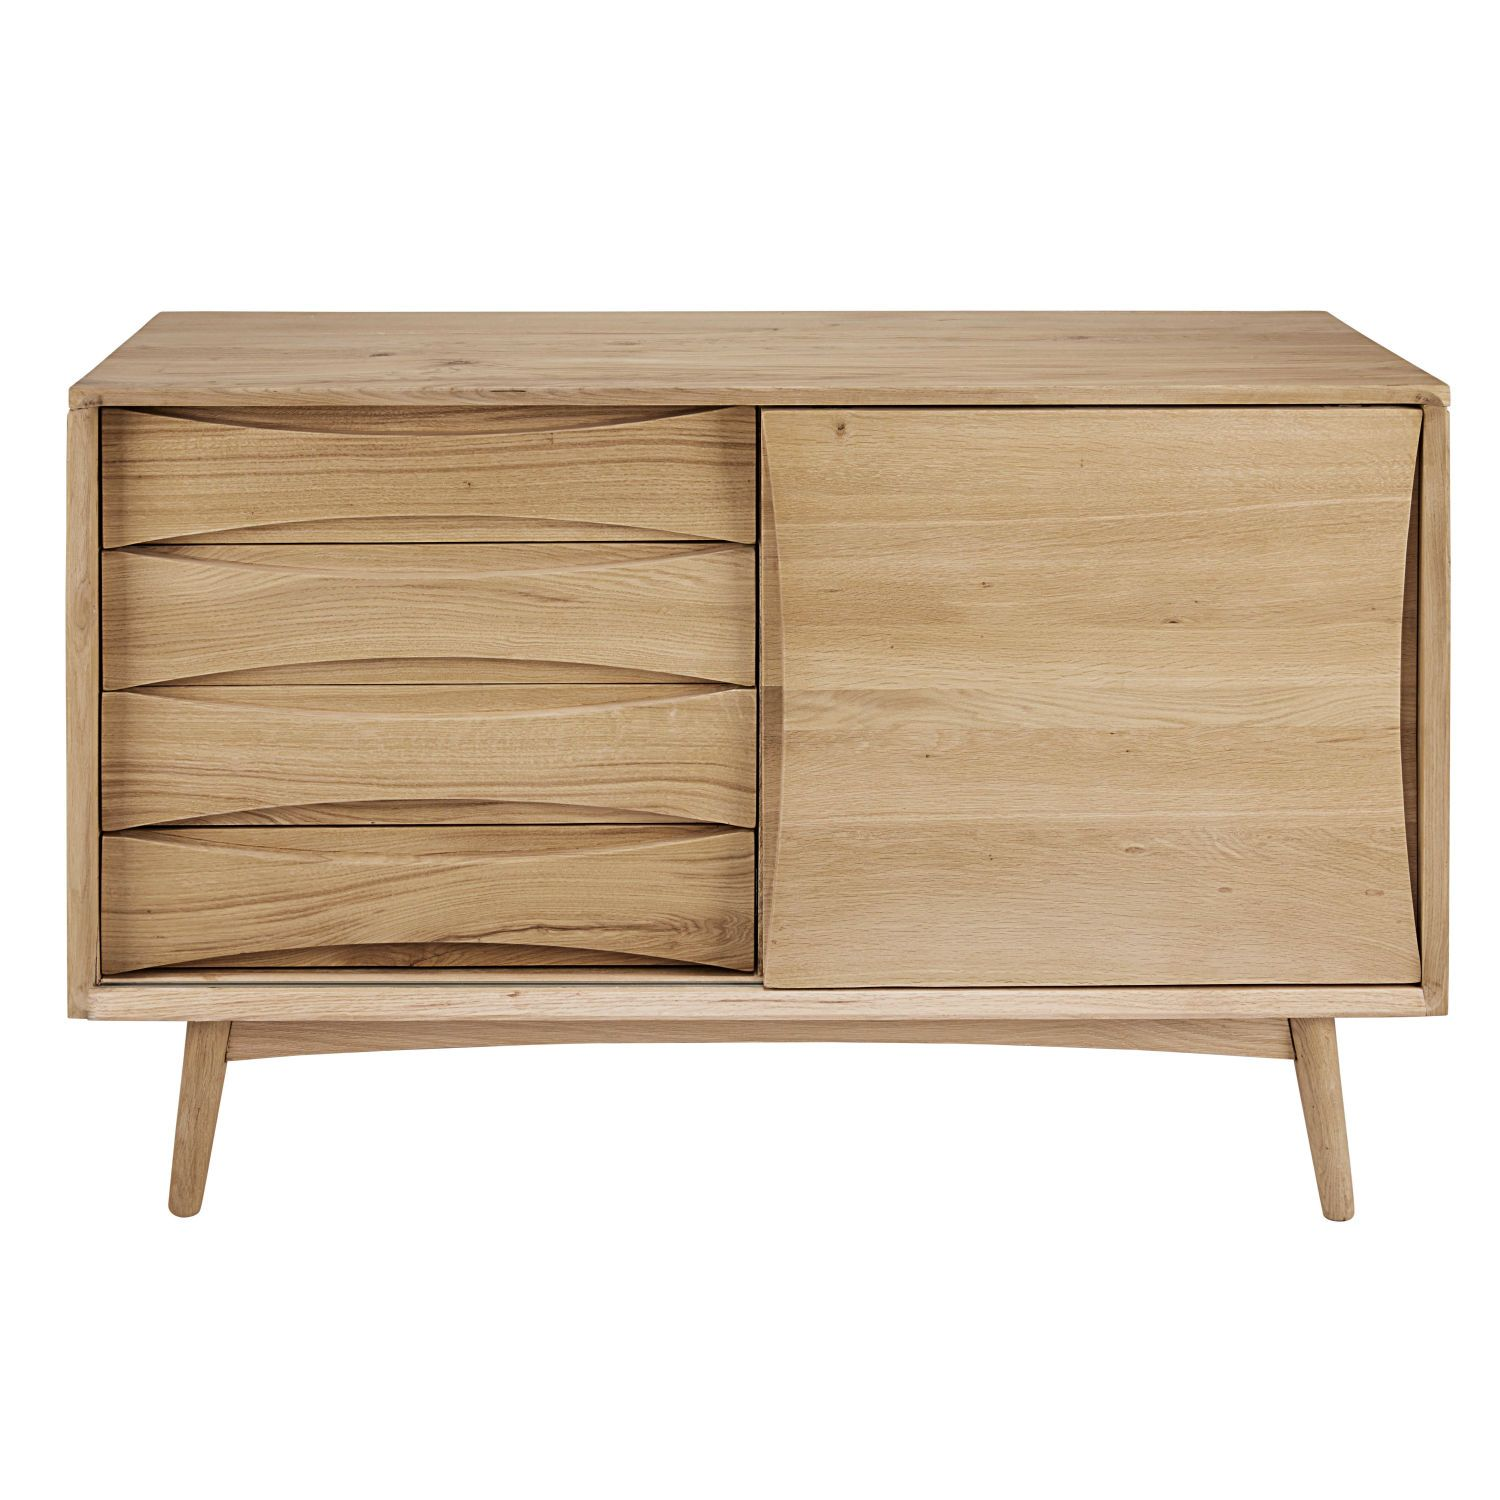 Scandinavian Feelbrighten Up Your Home With This Almond Solid Oak Sideboard Its Light Wood And Clean Lines Are Reminiscent Of The Scandinavian Design Casas